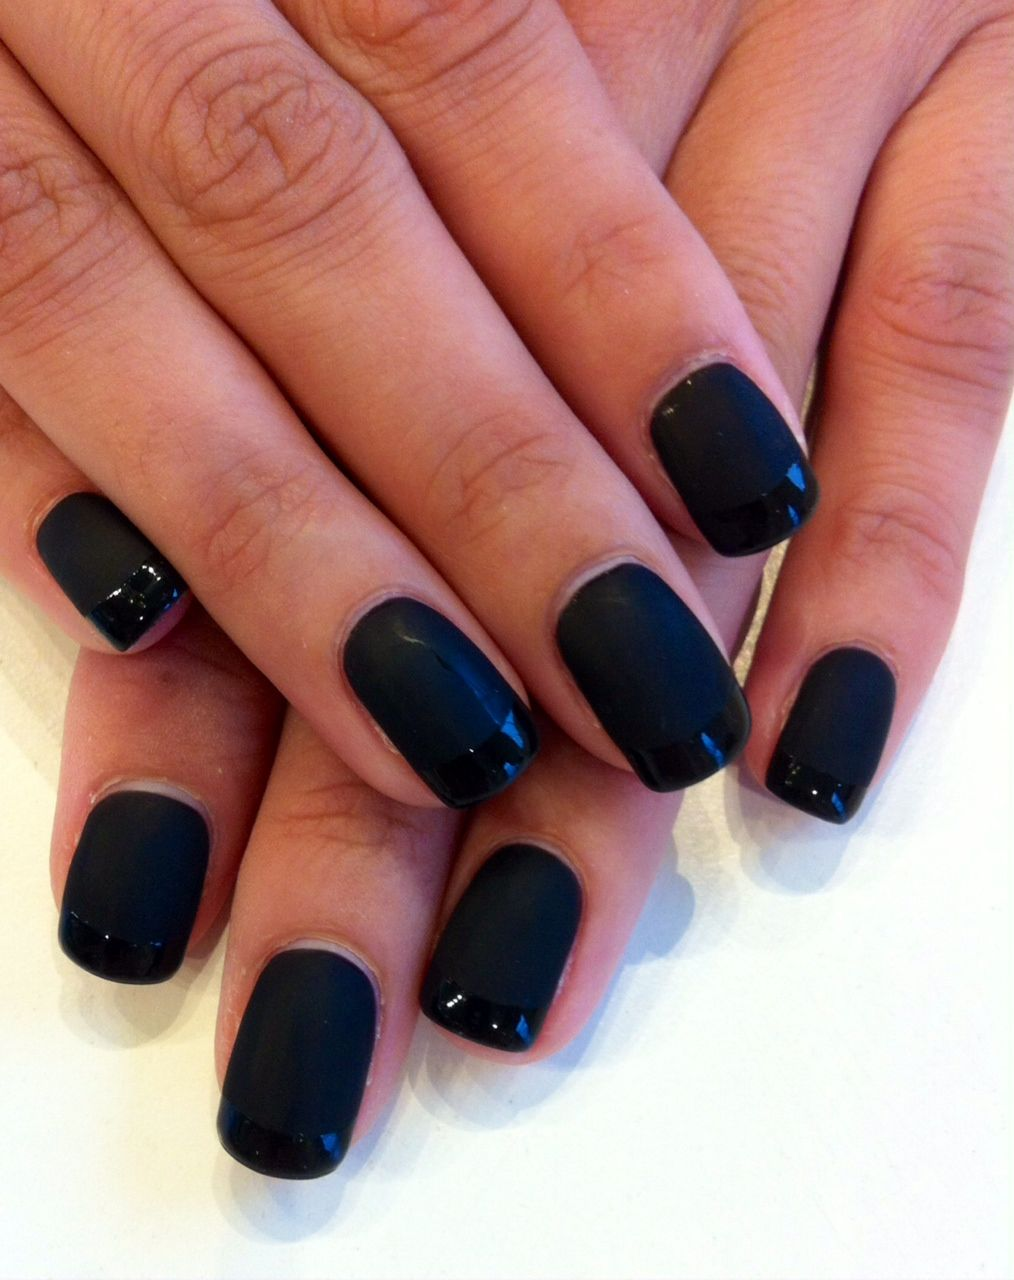 Matte black base with French tips in Bio Sculpture Gel colour: #2017 ...